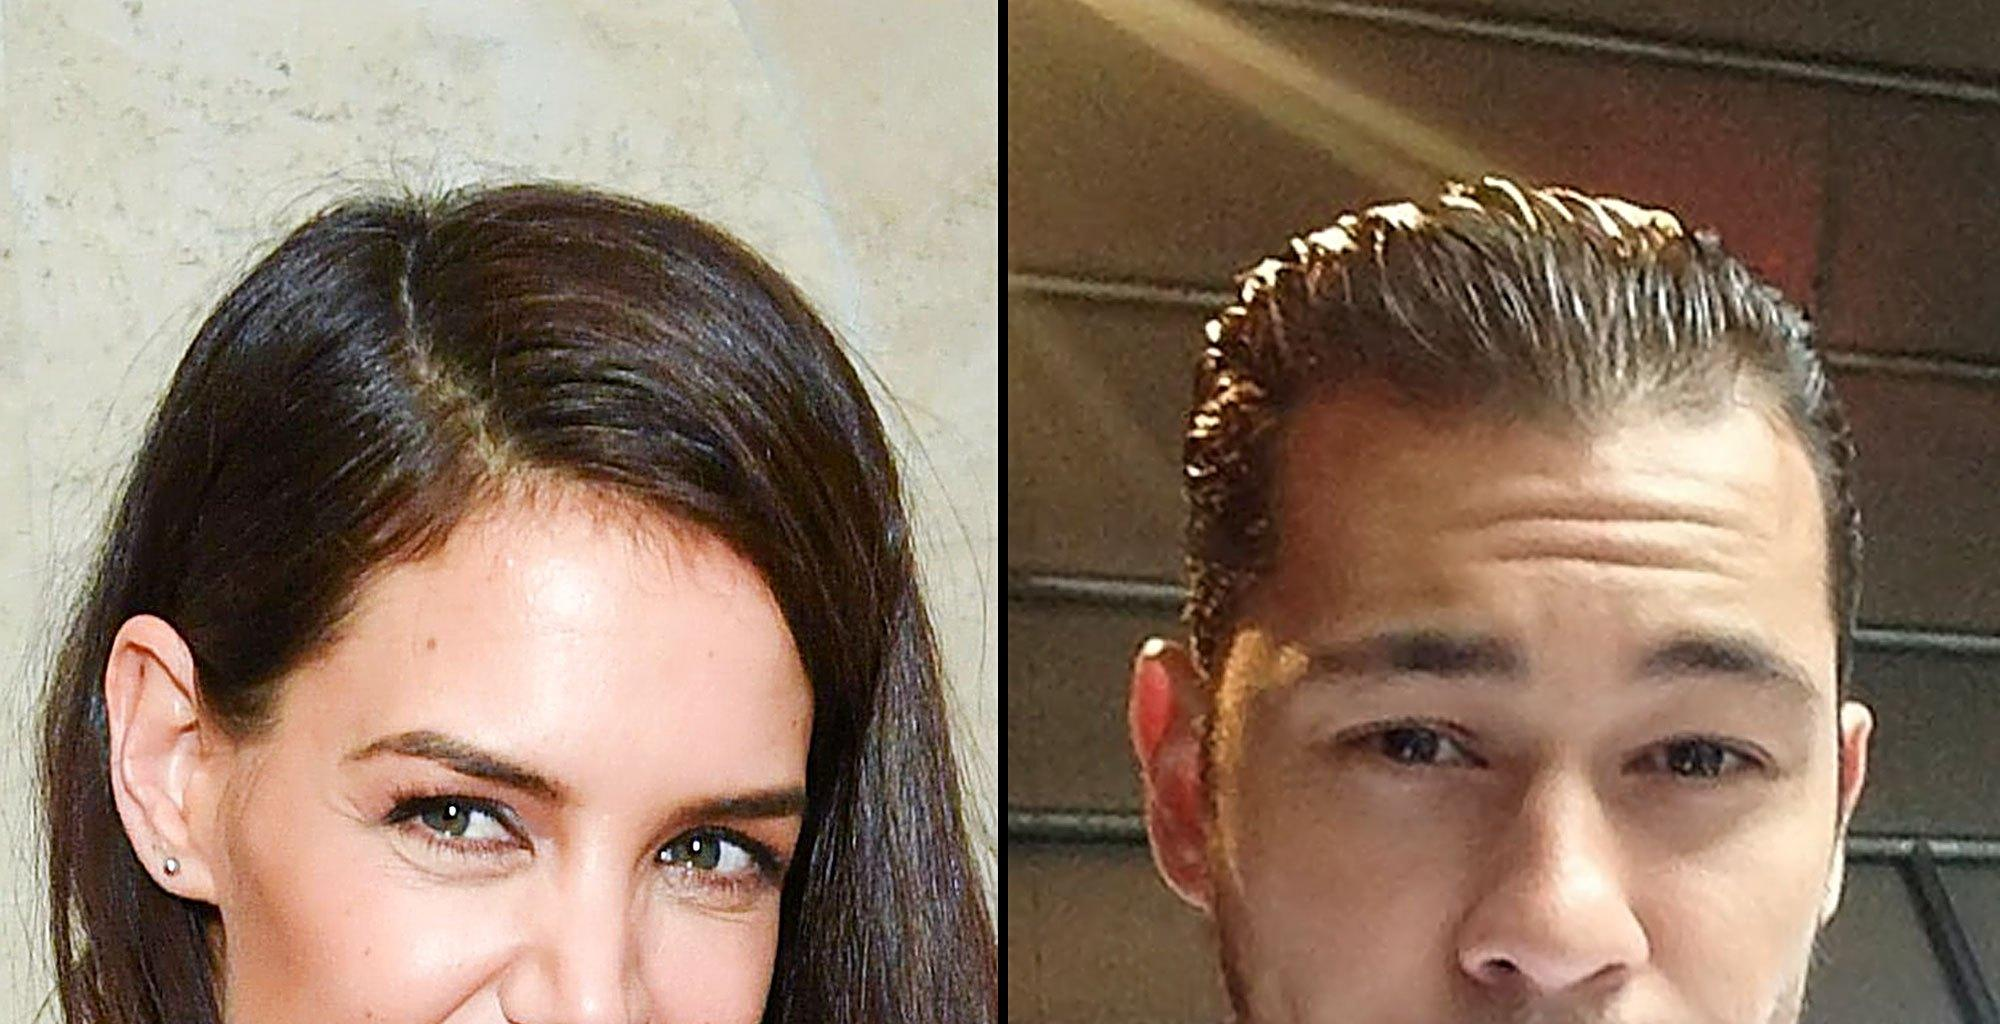 Katie Holmes' Romance With Emilio Vitolo Jr. Reportedly Making Her 'Feel Young Again' - Inside Their Relationship!